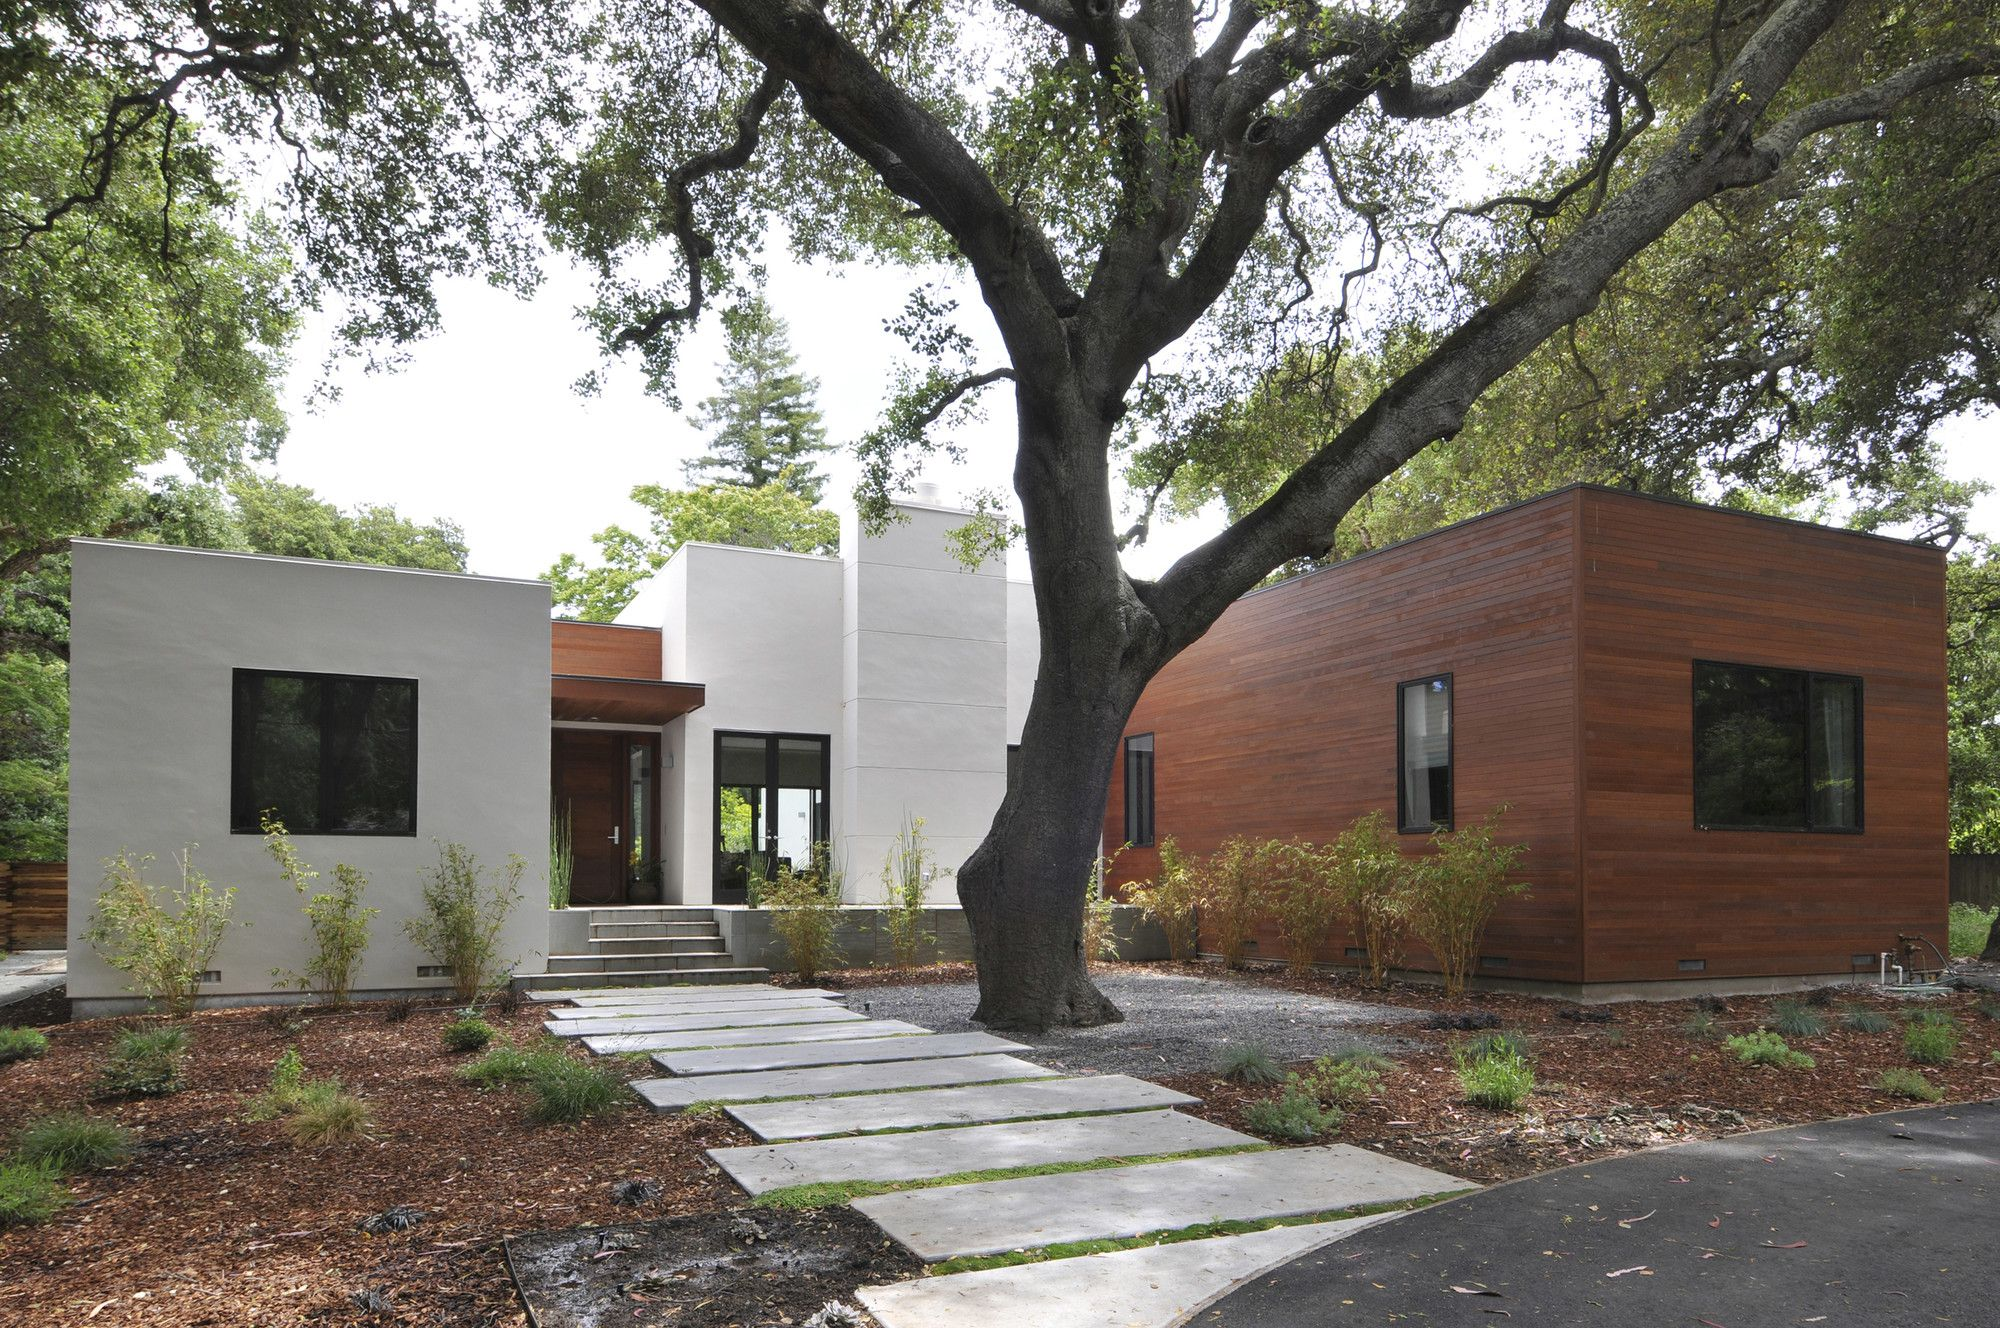 Residencia en menlo oaks ana williamson architect for Casa minimalista harborview hills